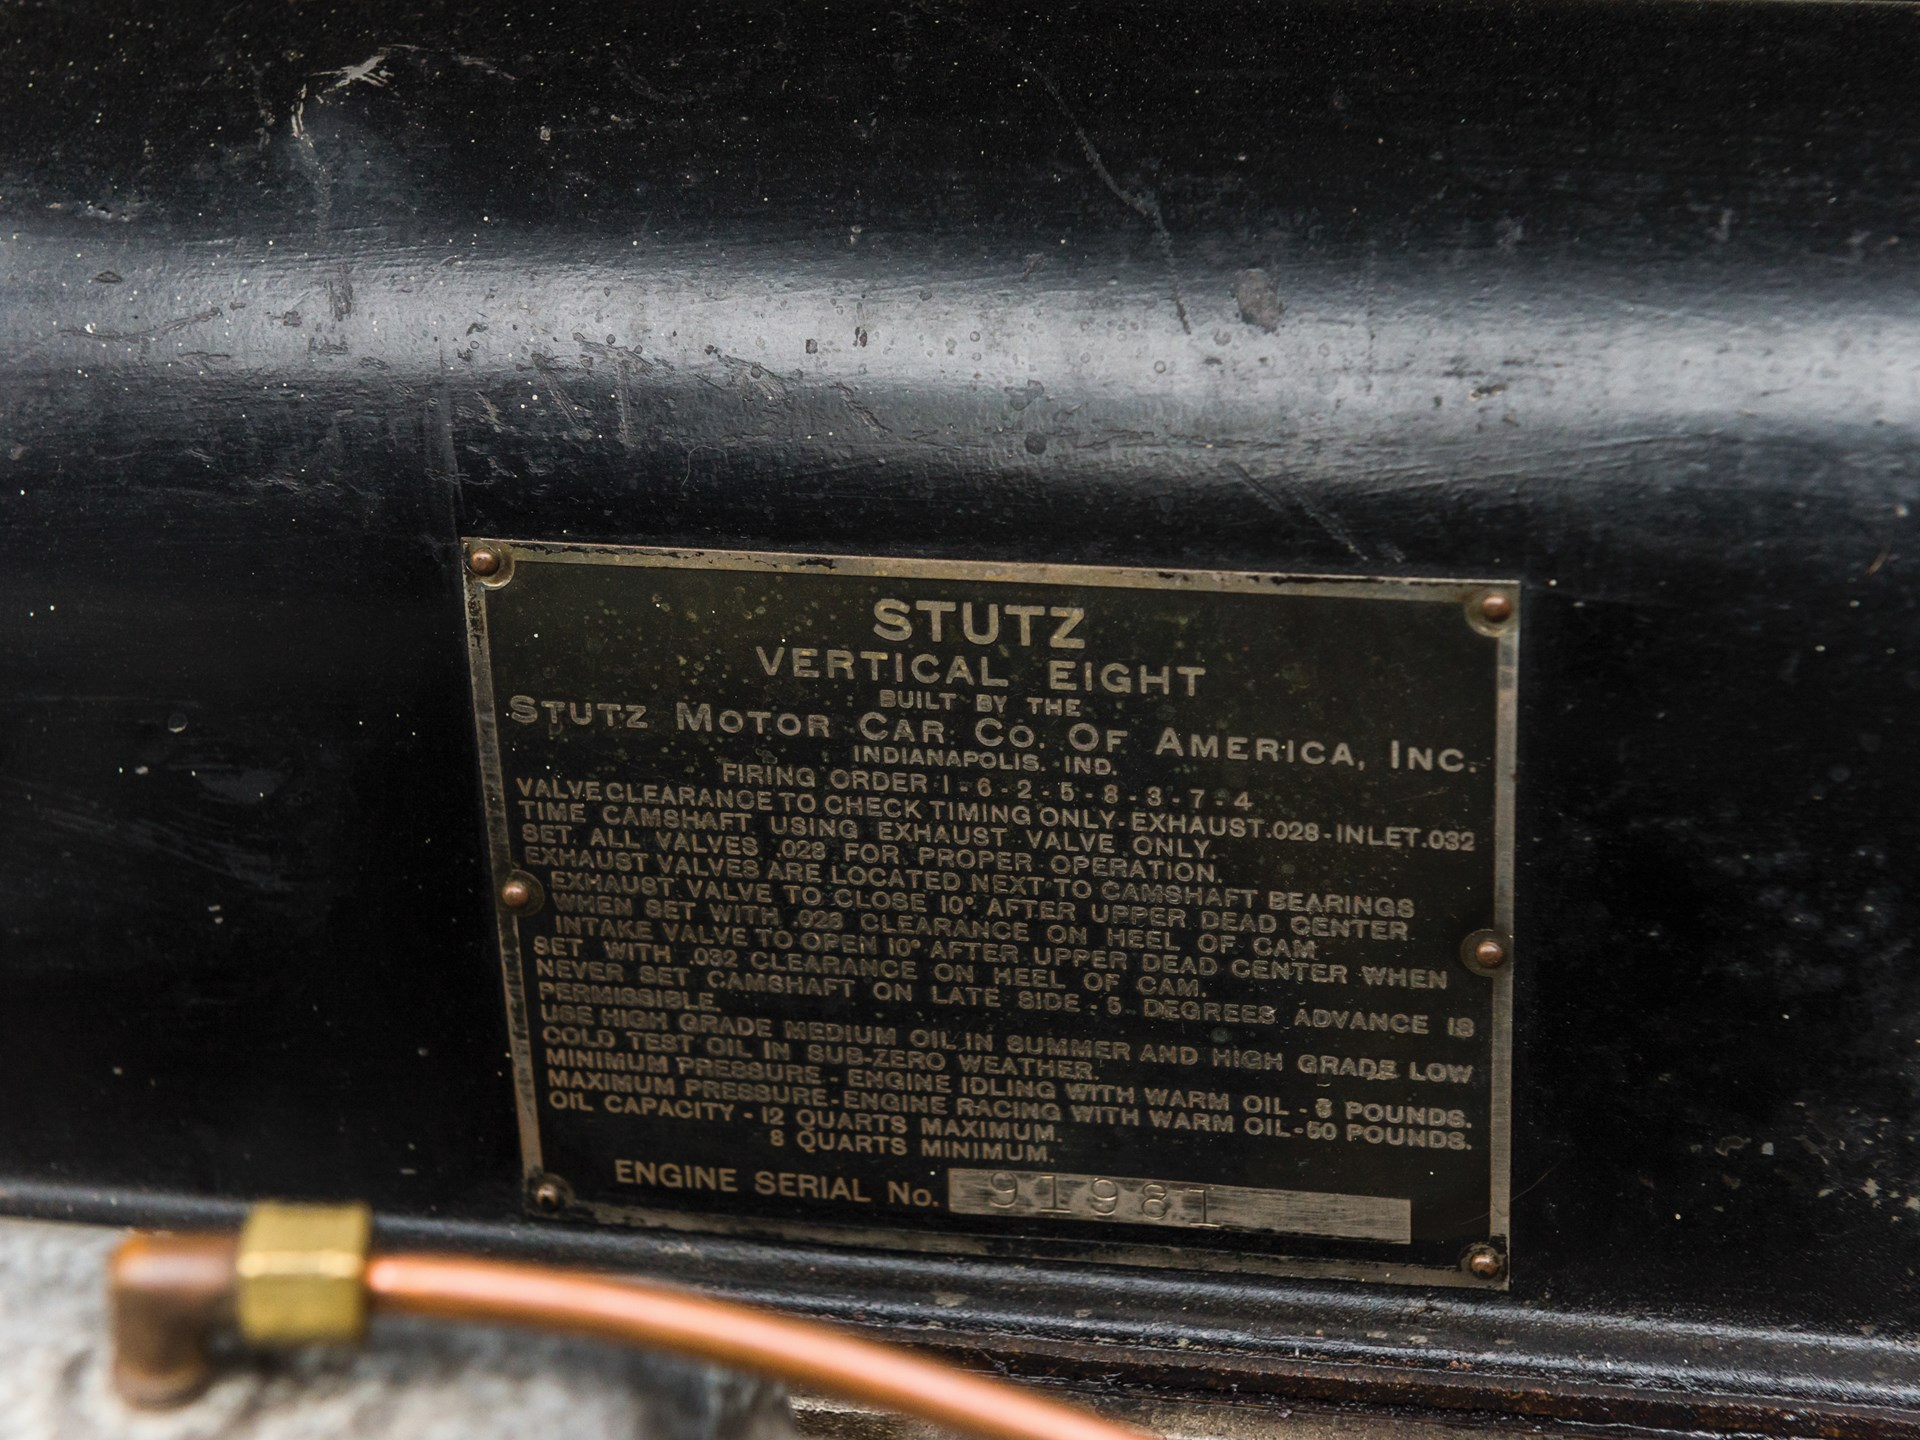 Stutz Vertical Eight manufacturer's plate